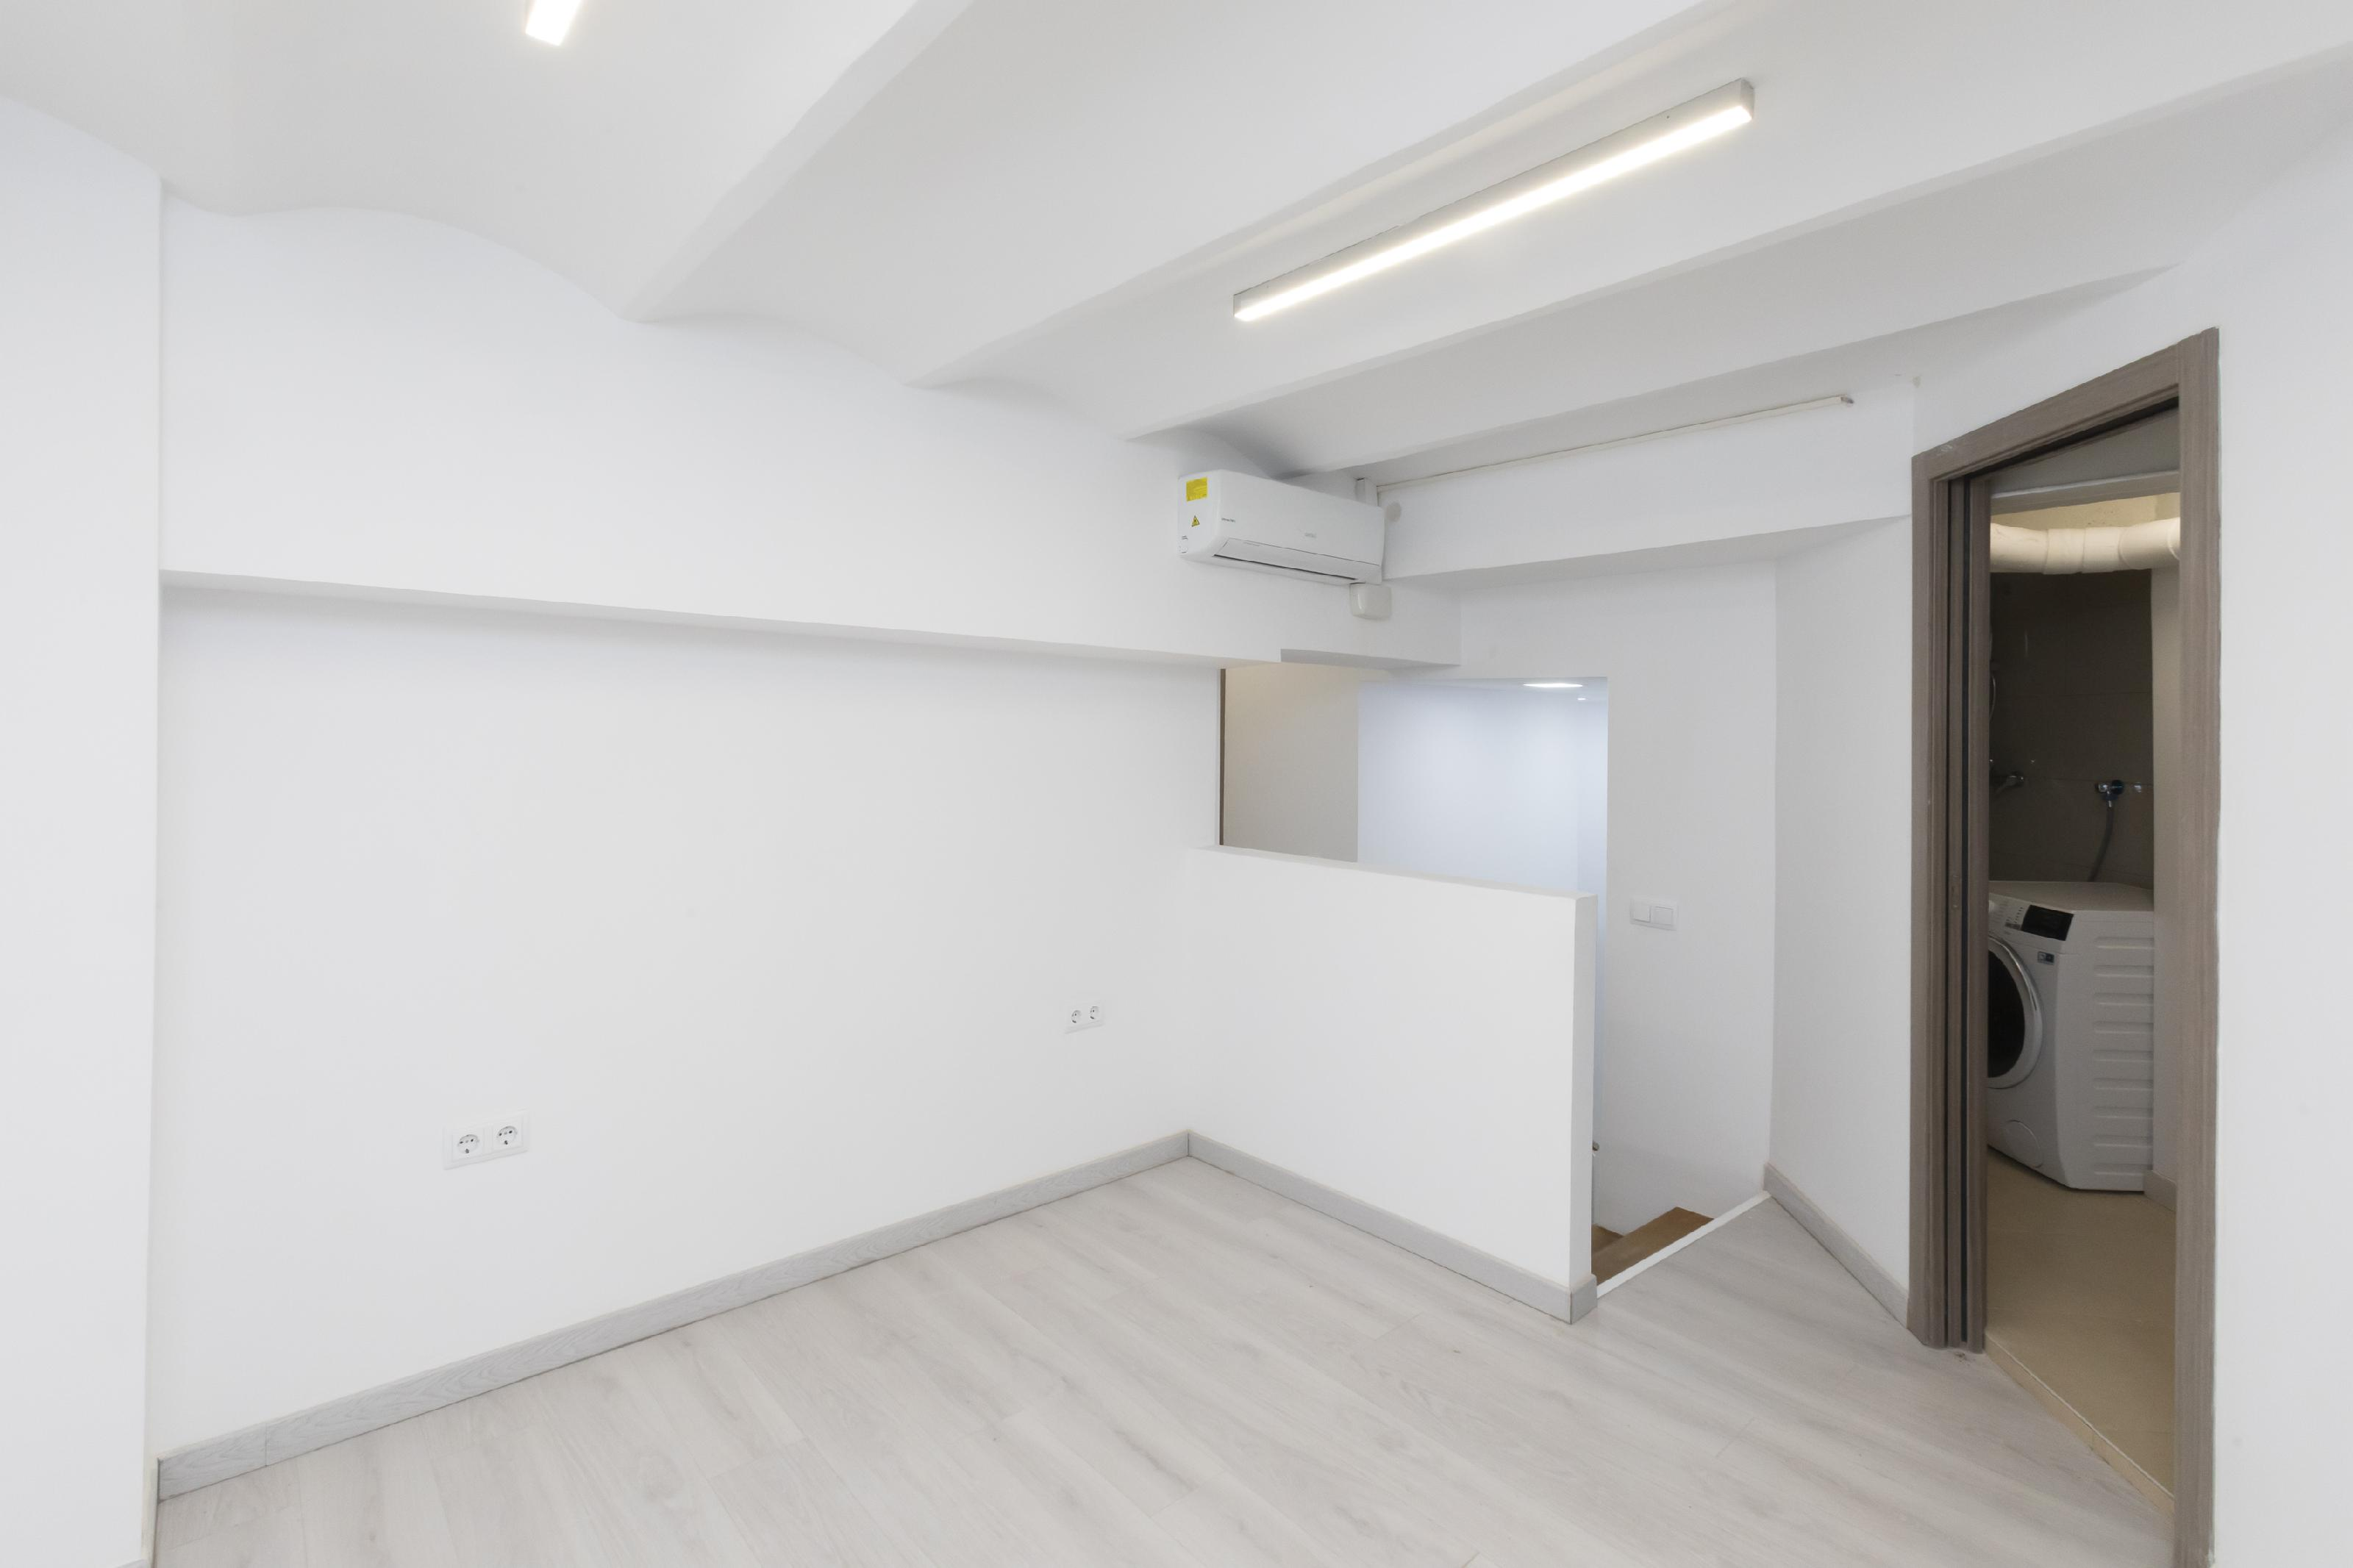 242978 Flat for sale in Gràcia, Camp Grassot and Gràcia Nova 13